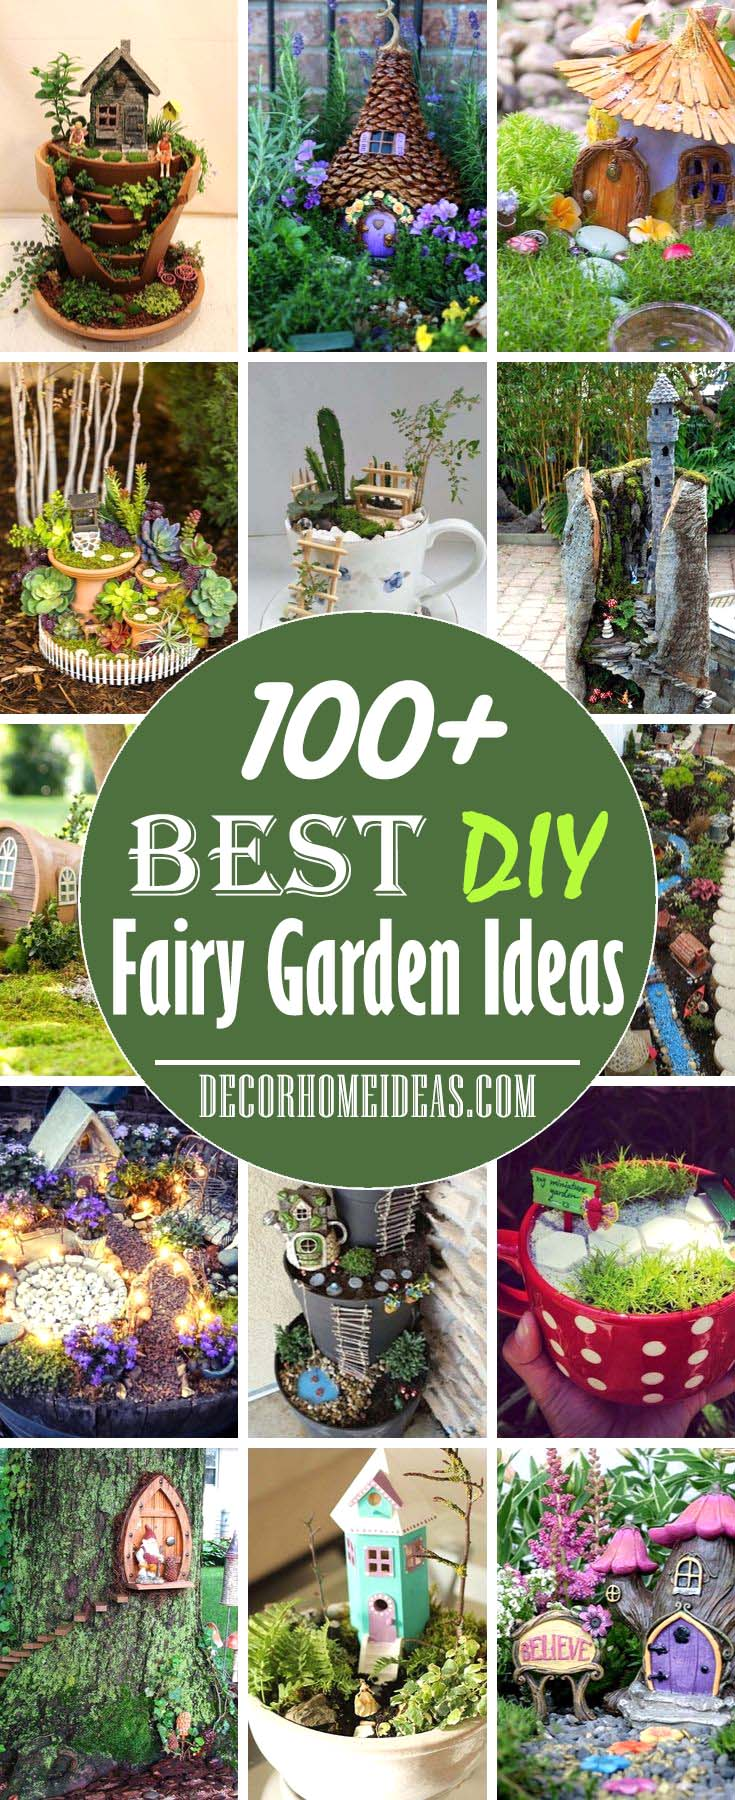 Best DIY Fairy Garden Ideas and Designs #fairygarden #diy #decorhomeideas